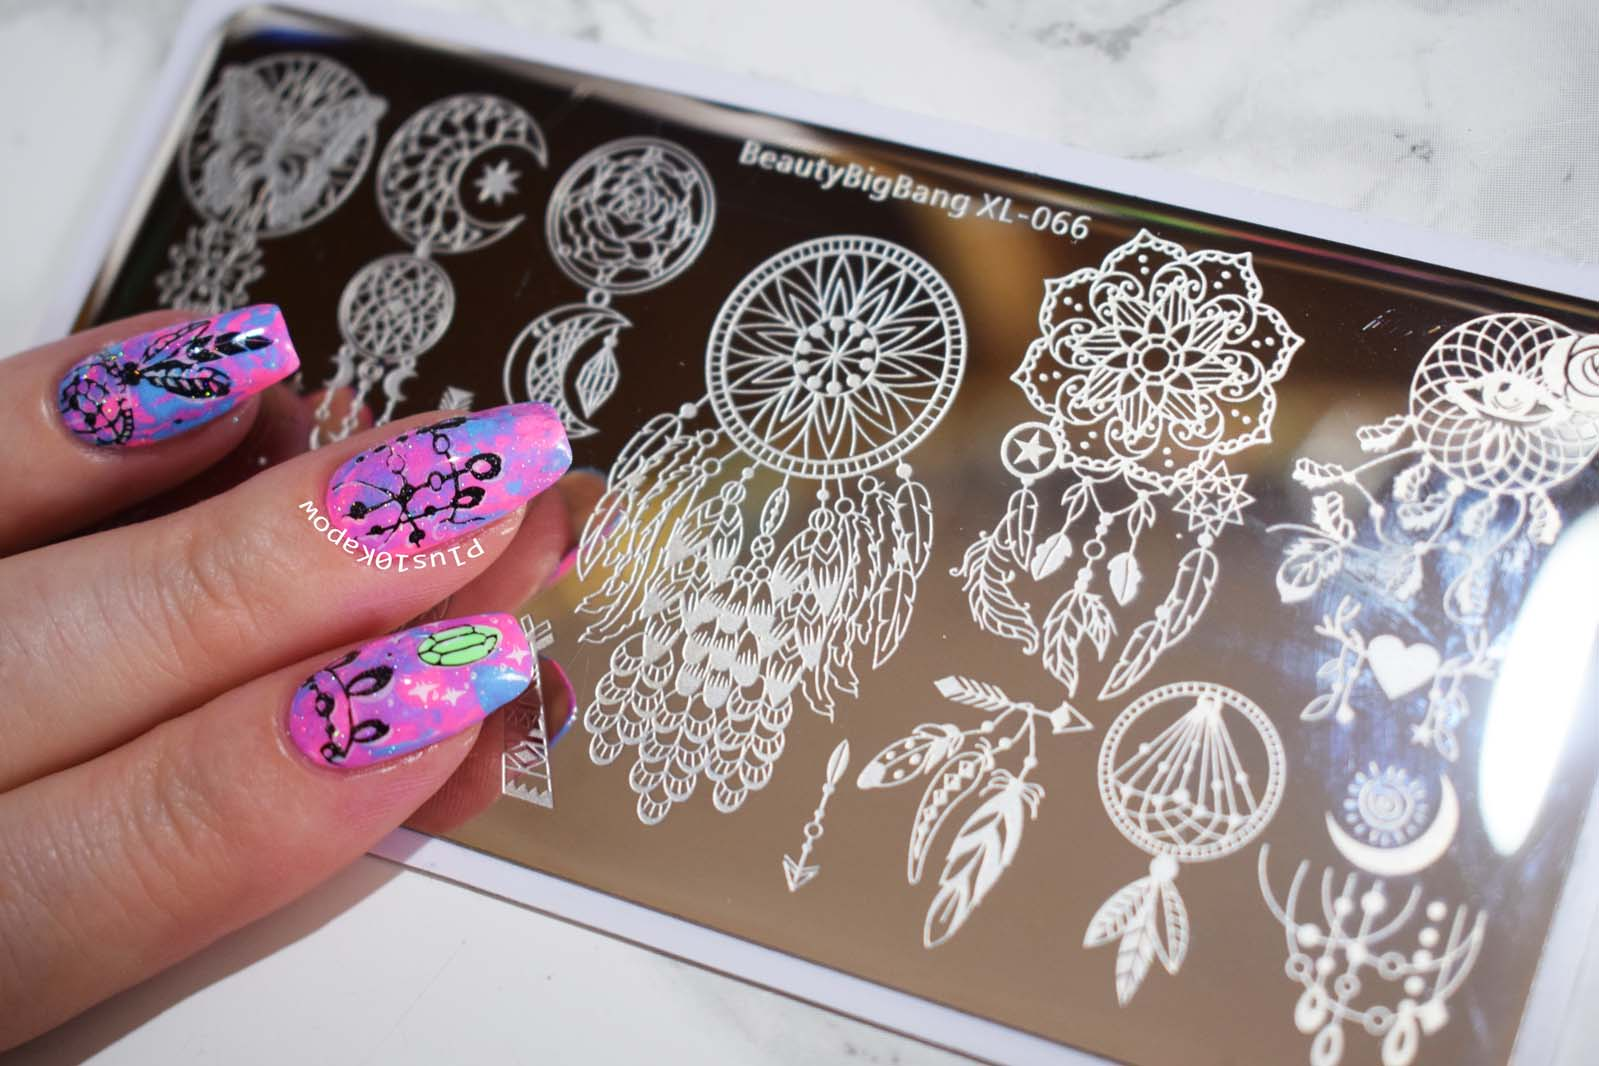 Beauty Big Bang Xl-066 stamping plate